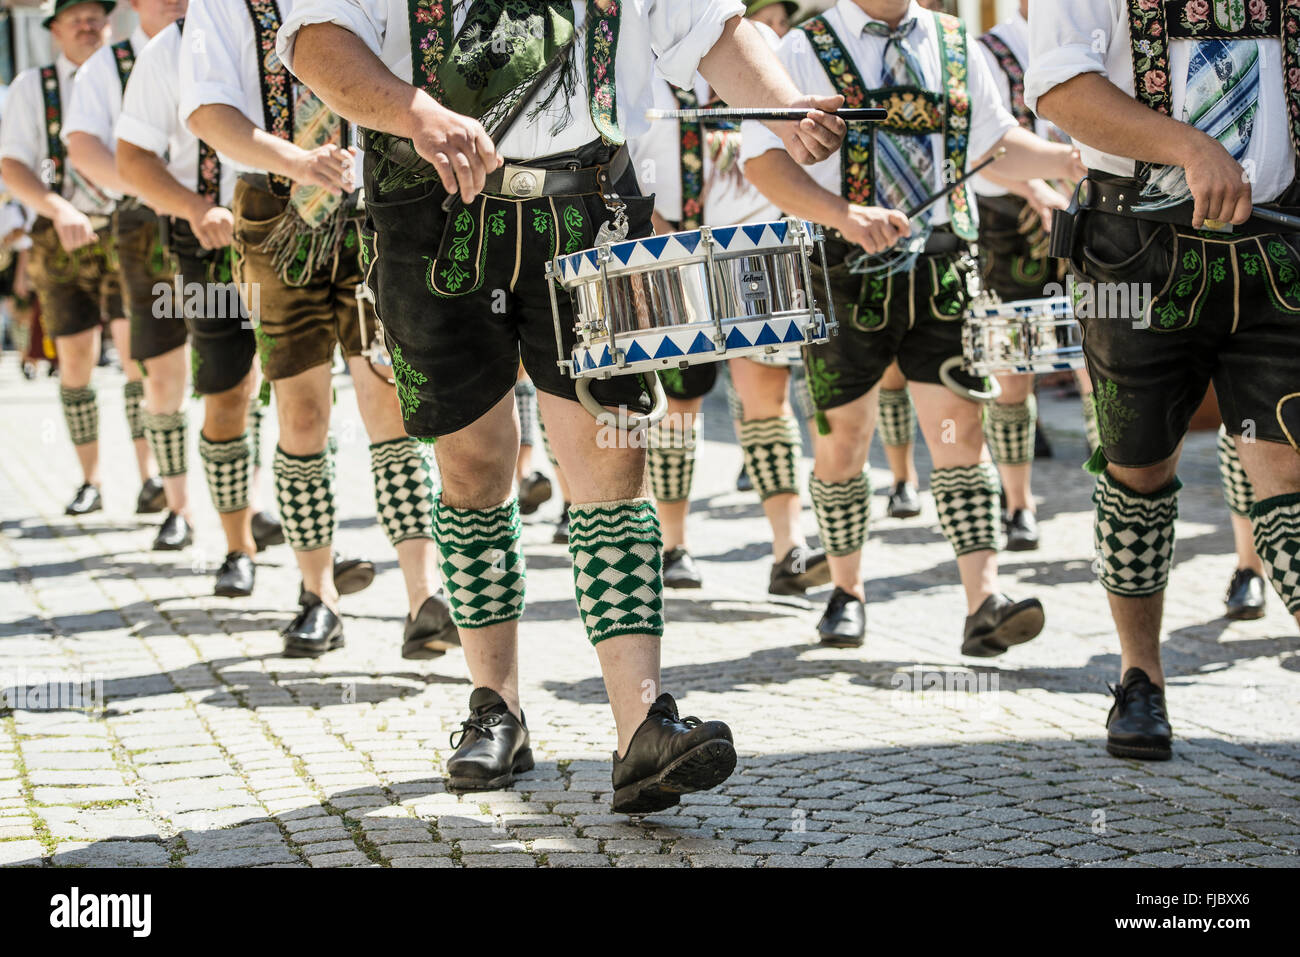 Parade marching Band, traditionellen Trachtenumzug, Garmisch-Partenkirchen, Upper Bavaria, Bavaria, Germany Stockbild